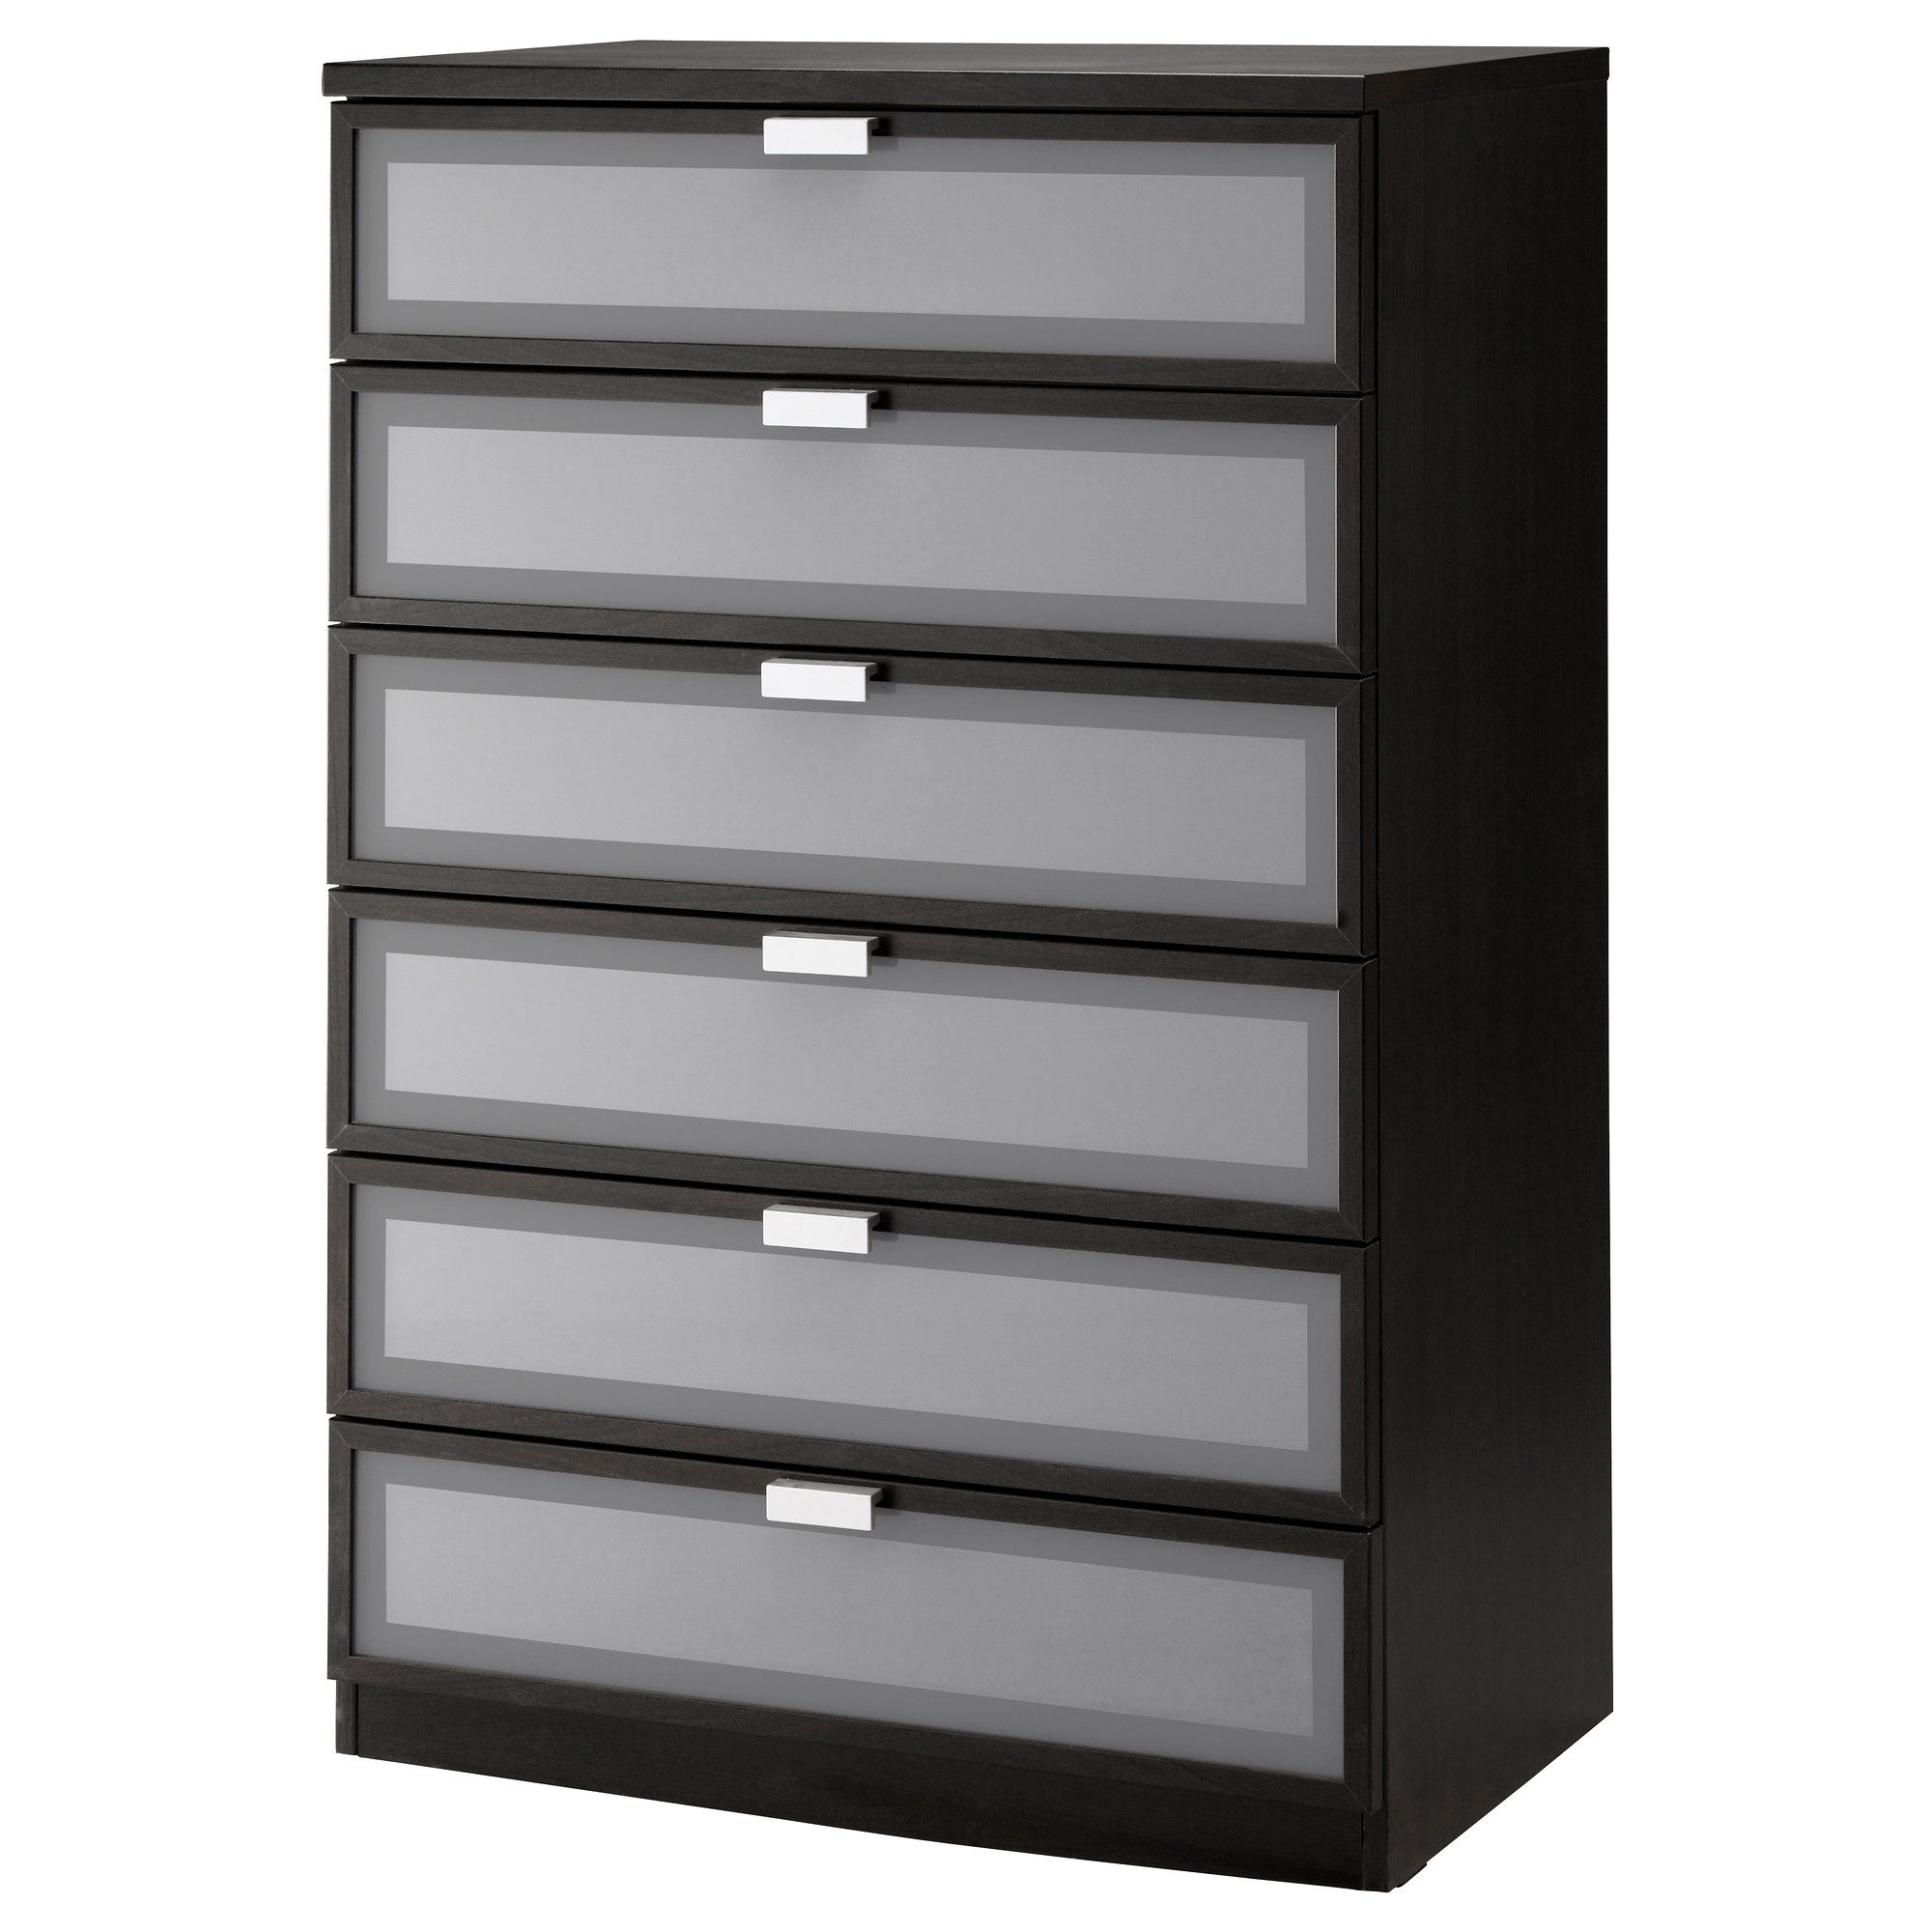 Ikea Us Furniture And Home Furnishings Ikea Hopen Chest Of